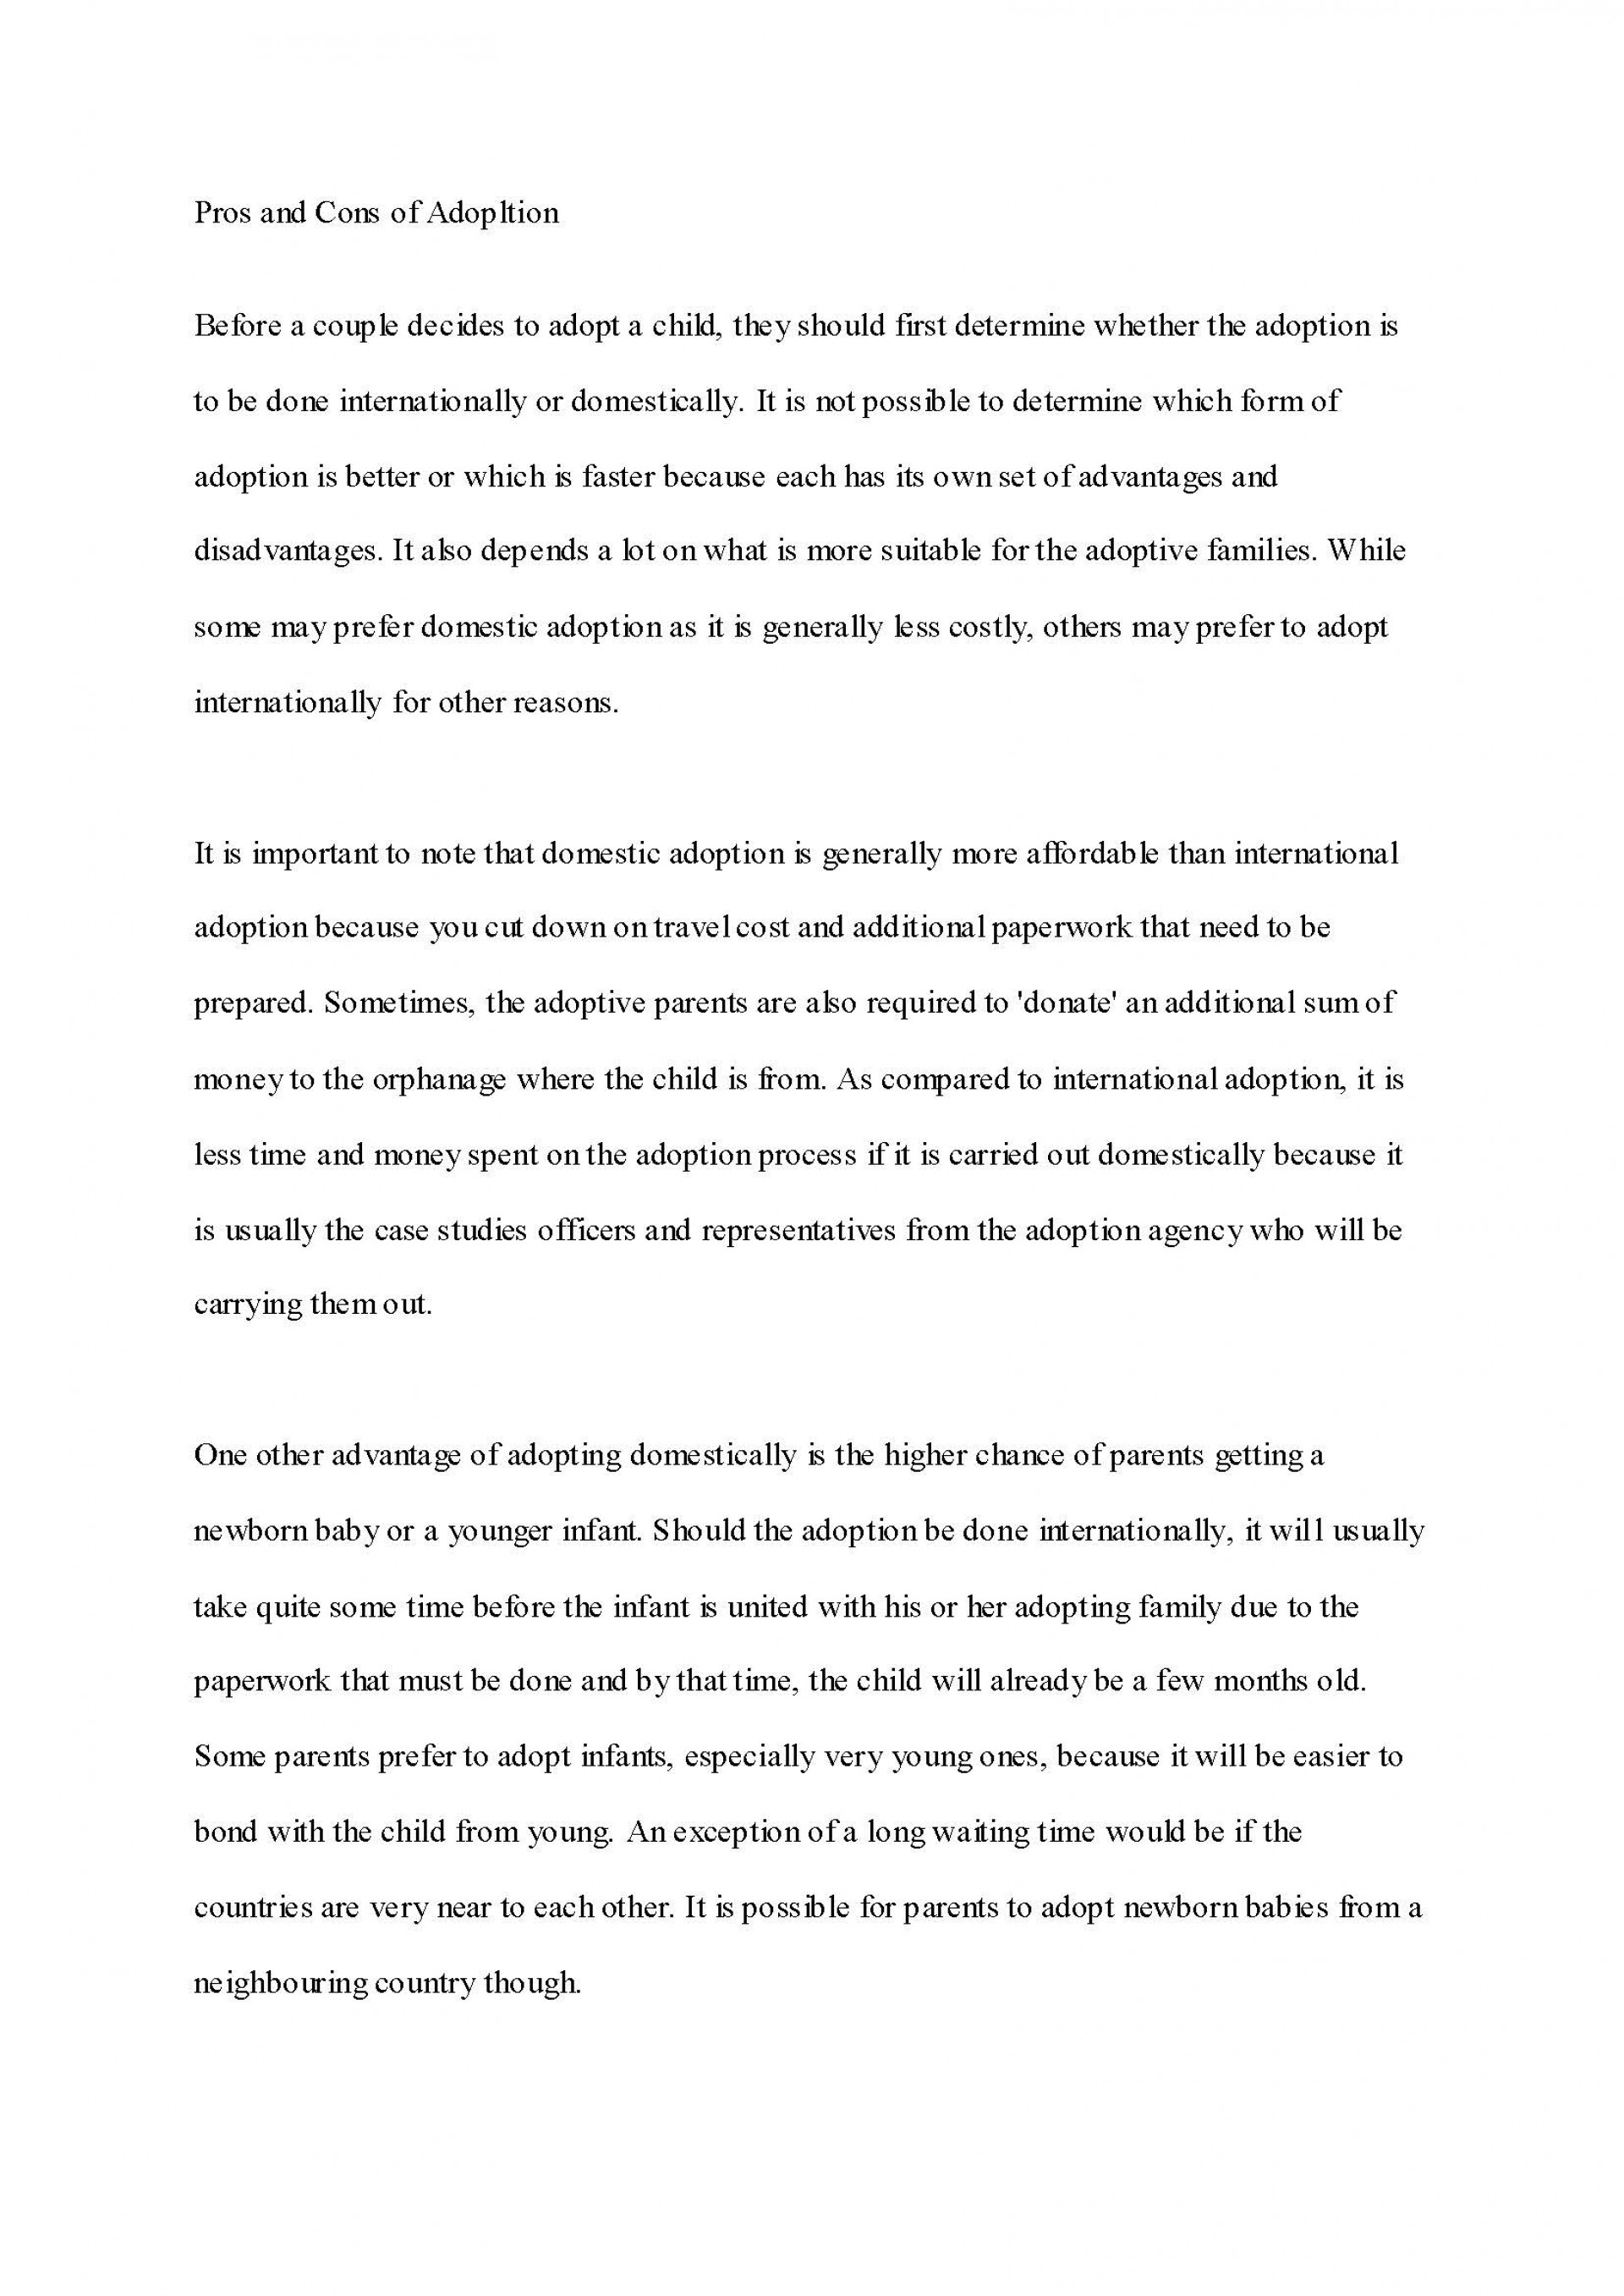 005 Essay Example Adoption Impressive Examples For Scholarship Application Formal In Literature With Thesis Statement And Topic Sentence 1920